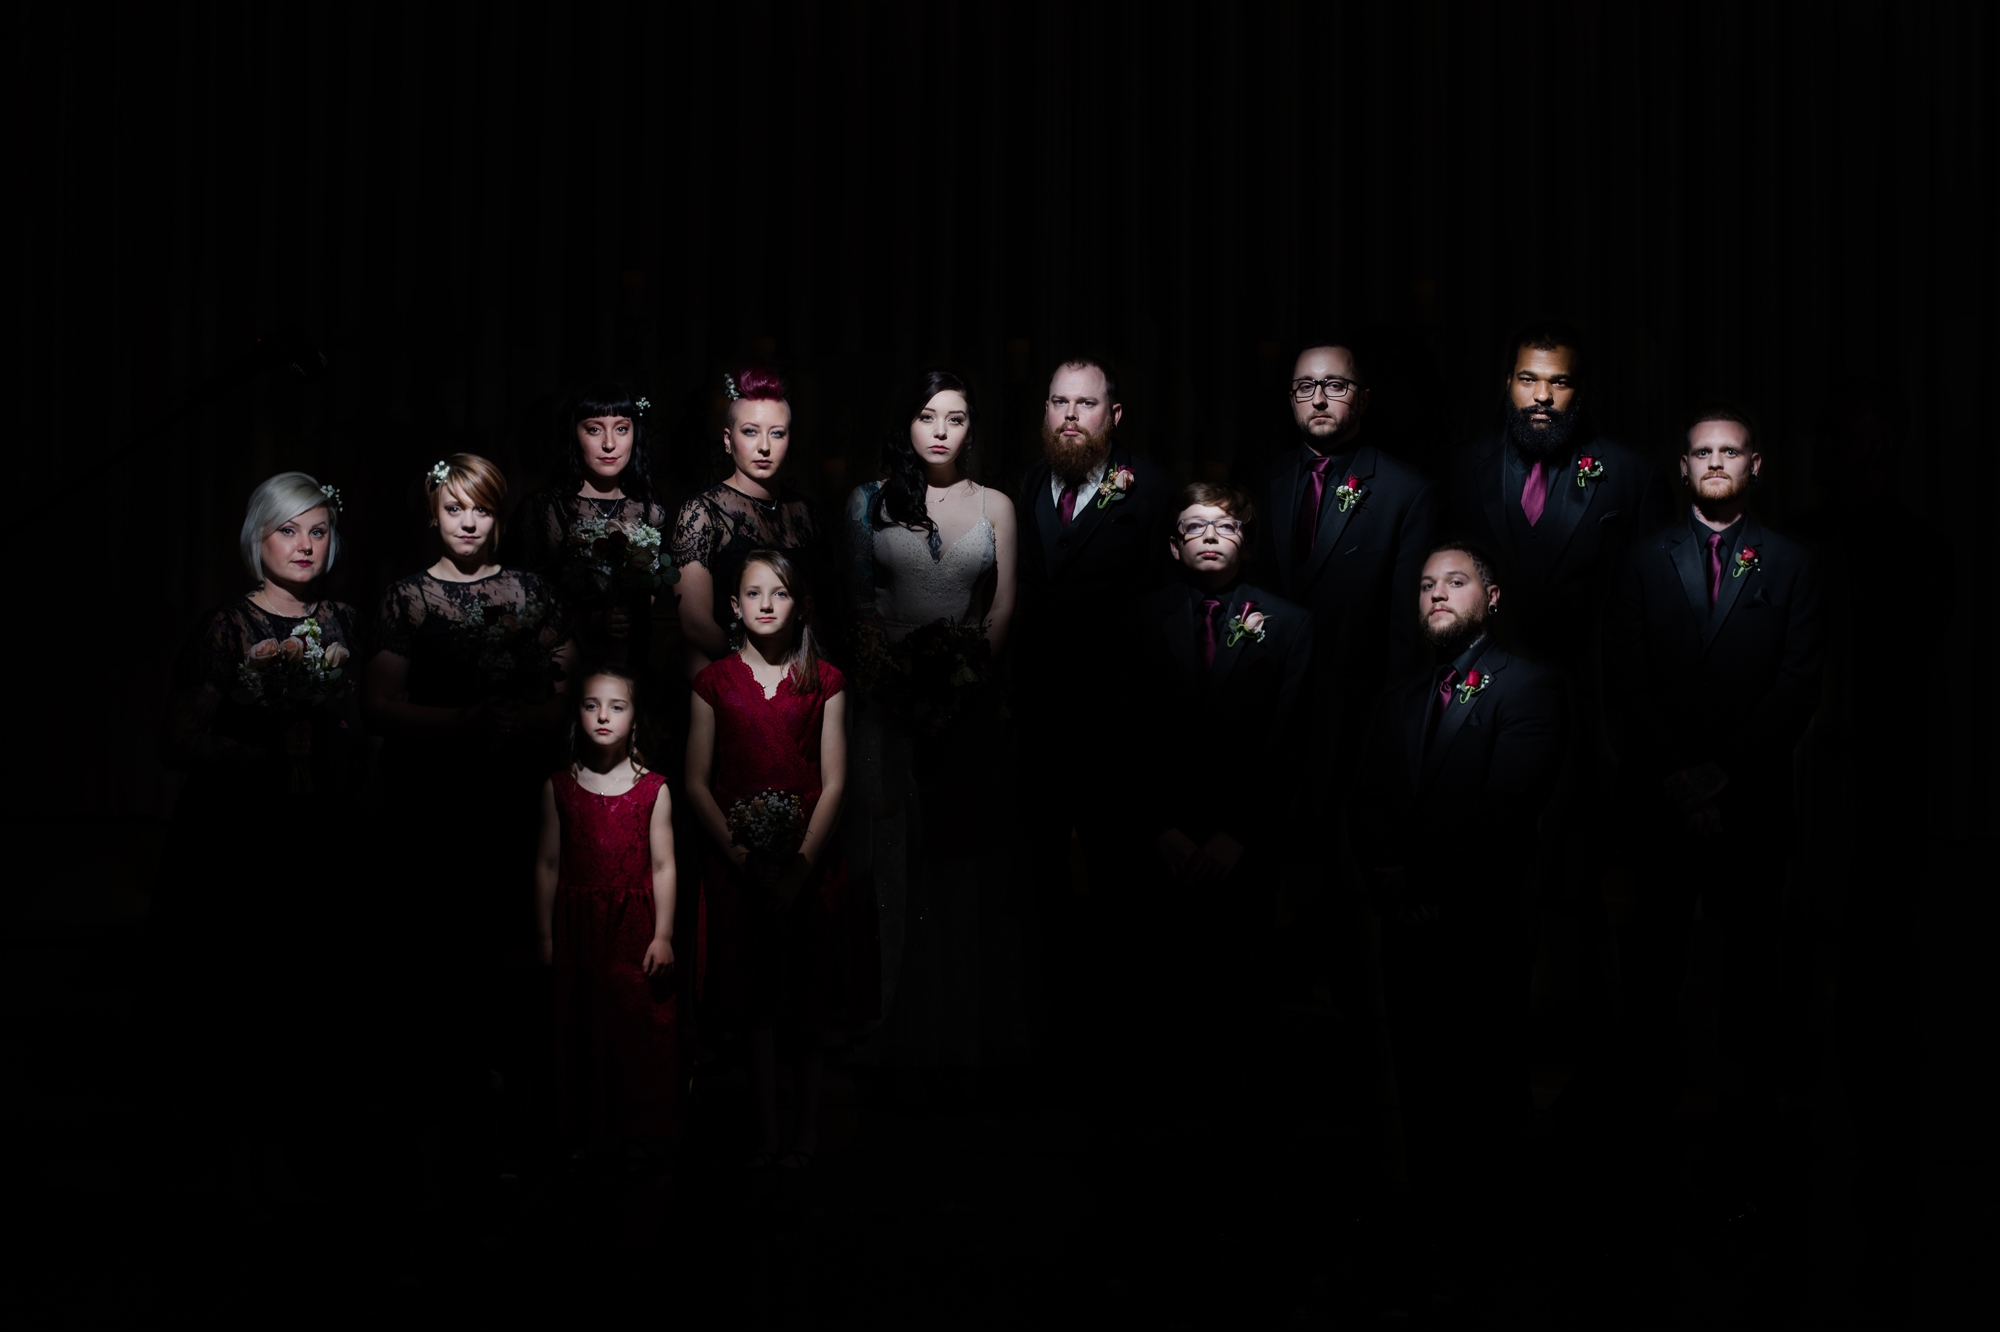 Gothic Themed Family Portrait - Black Forest by Wedgewood Weddings